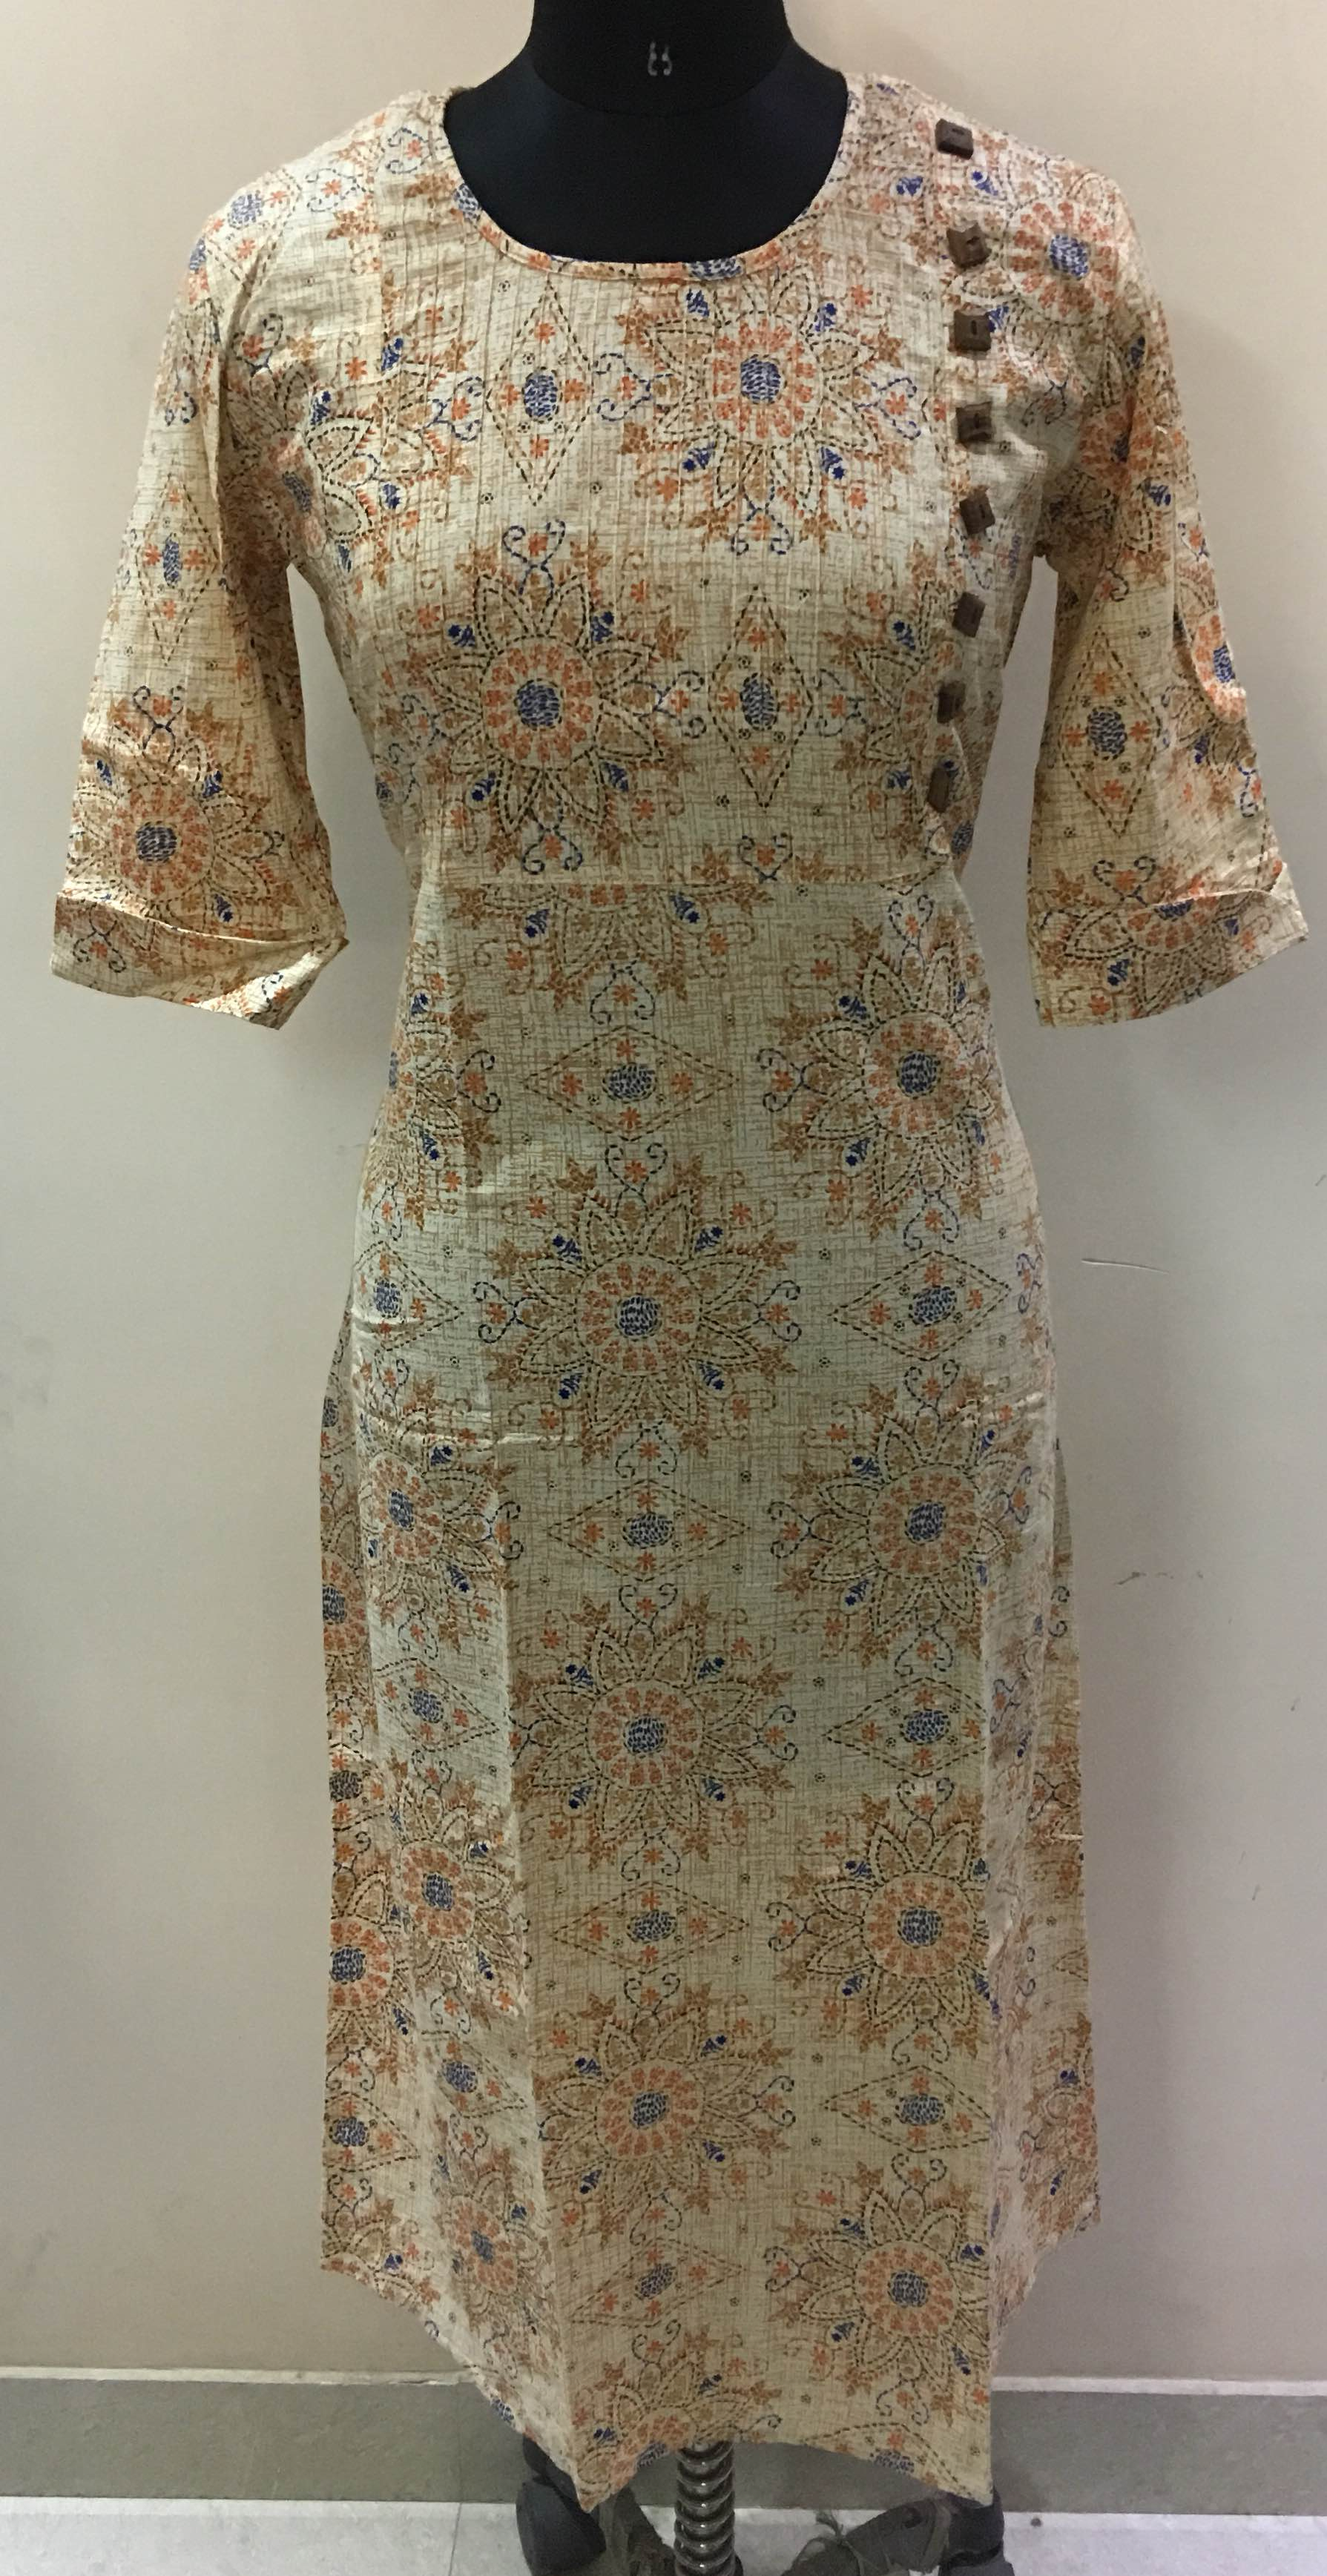 designer long kurtis from Jaipur India. We are one of the leading kurti manufacturer form Jaipur. We make traditional long kurti and selfie style kurti. We work on all type of fabric and handwork. Contact 8003899649 for details